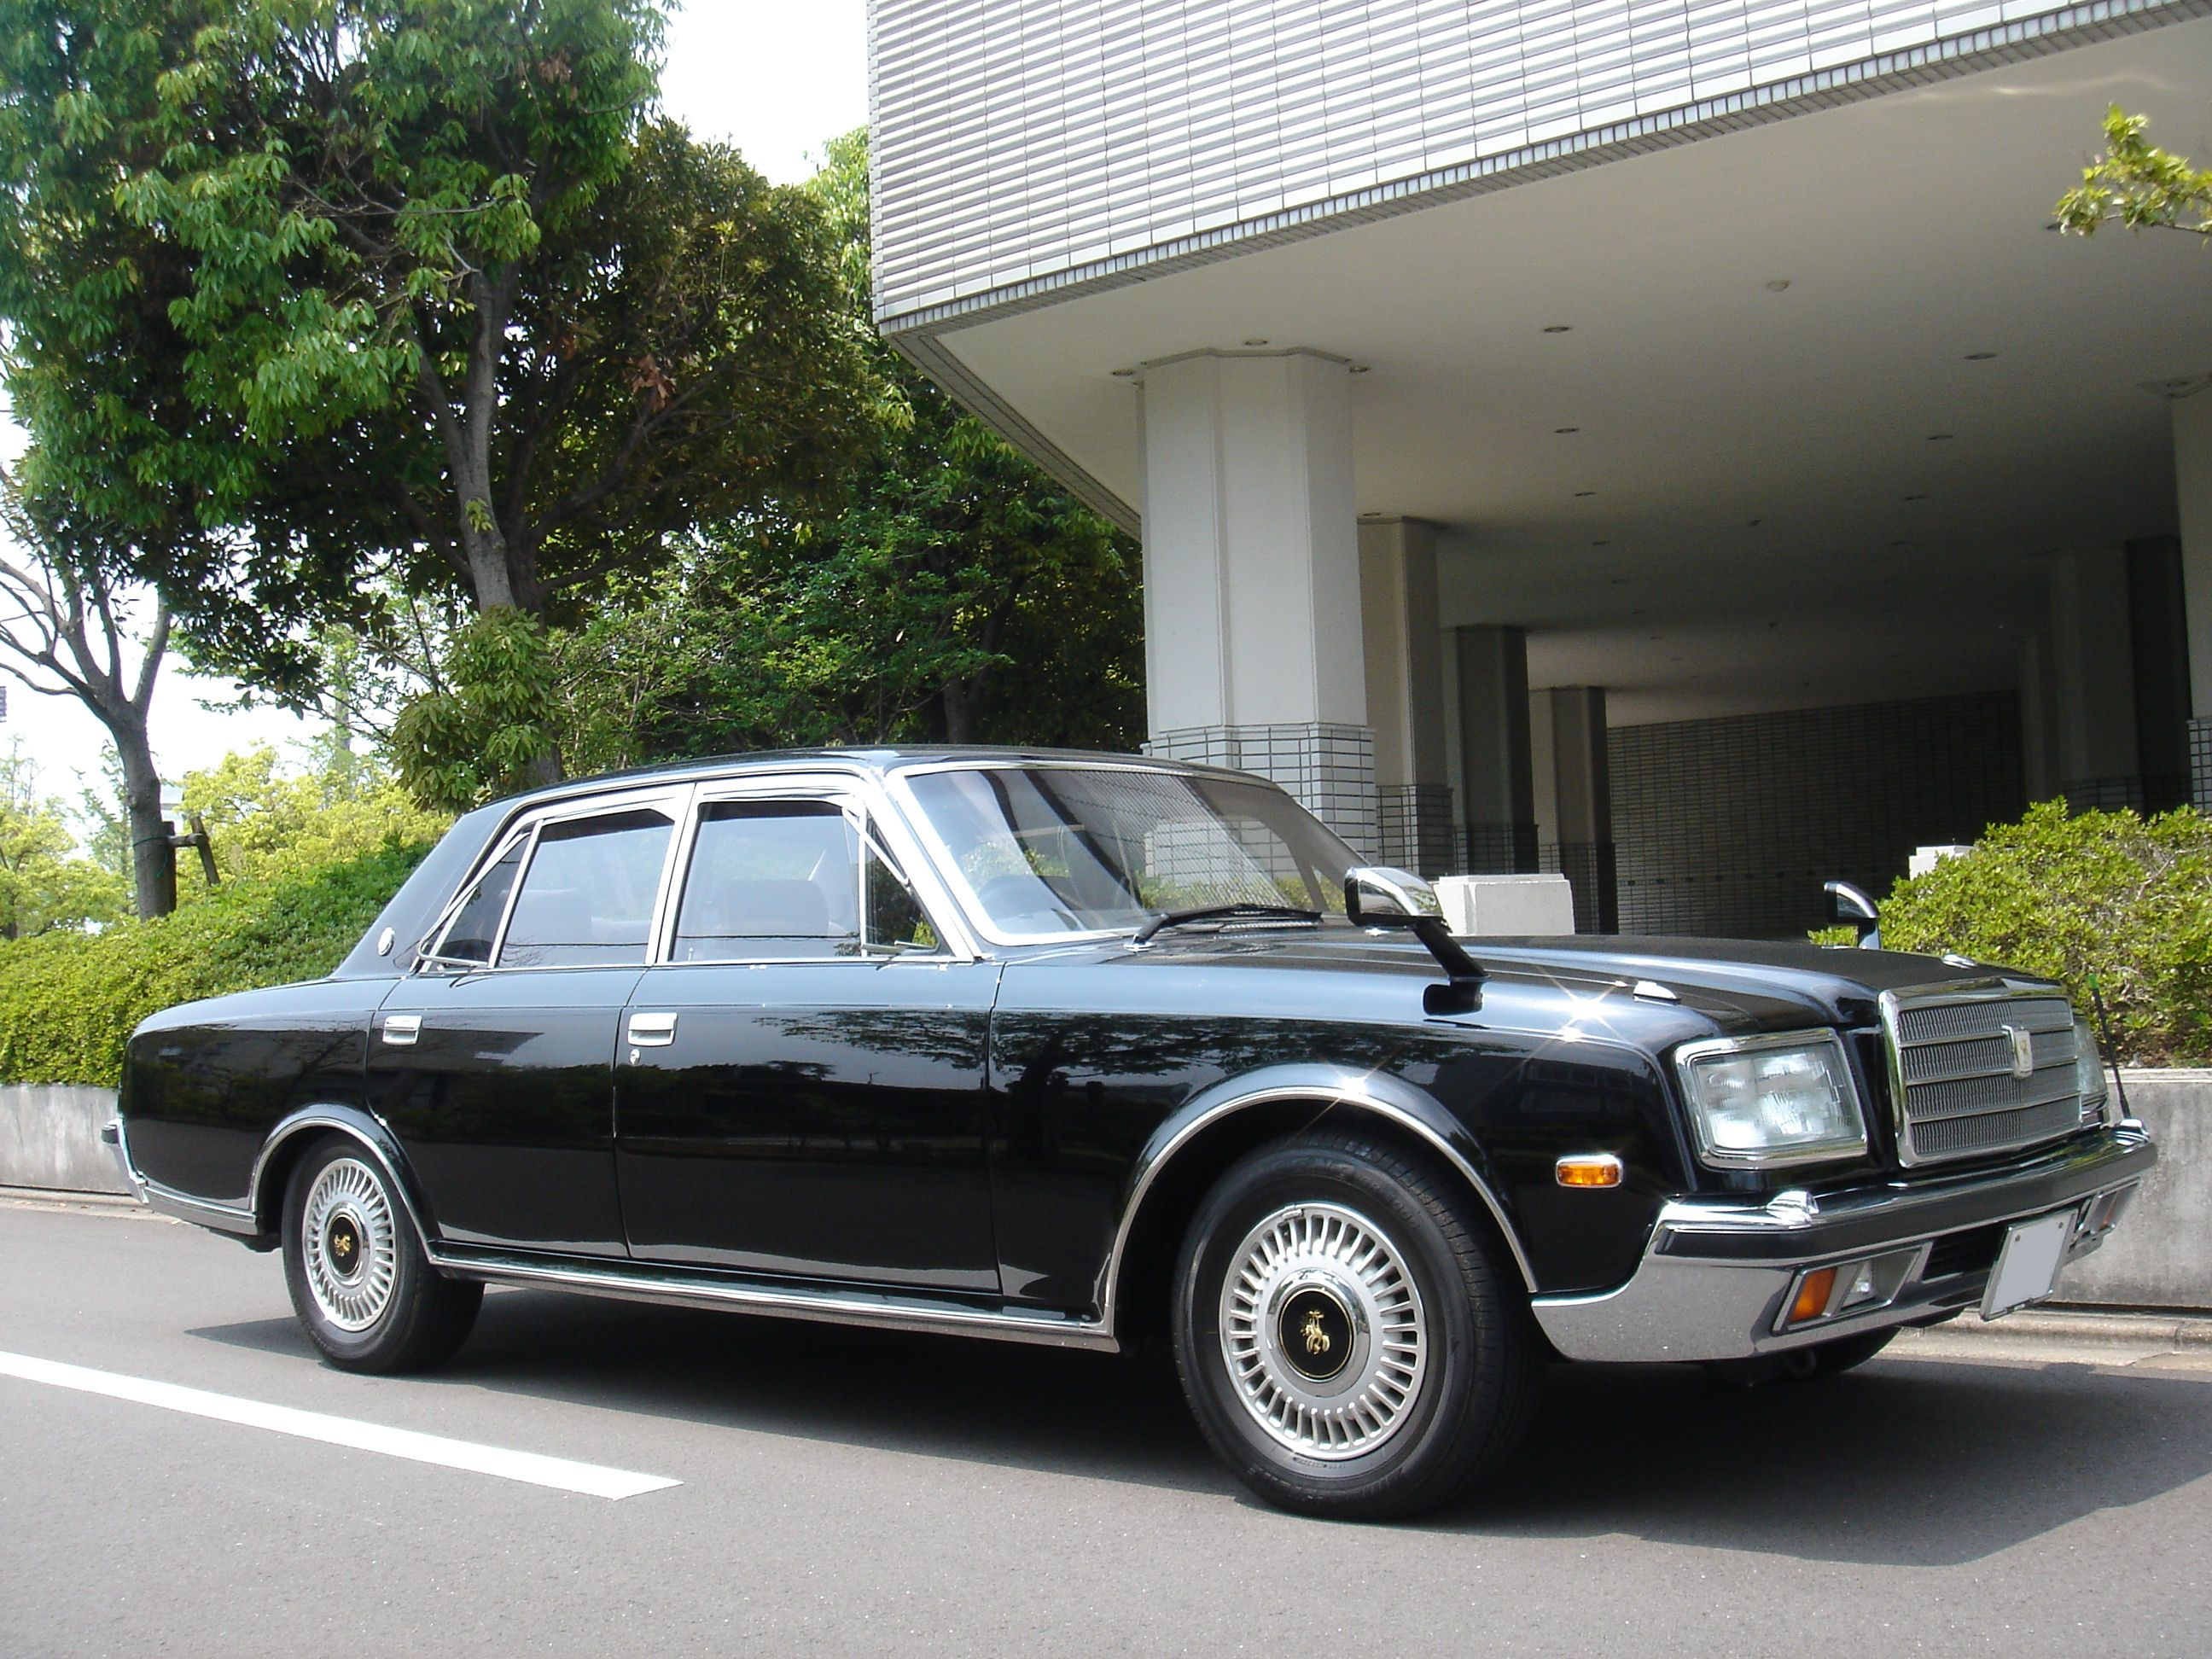 Toyota century most expensive limousines in the world explore limousine